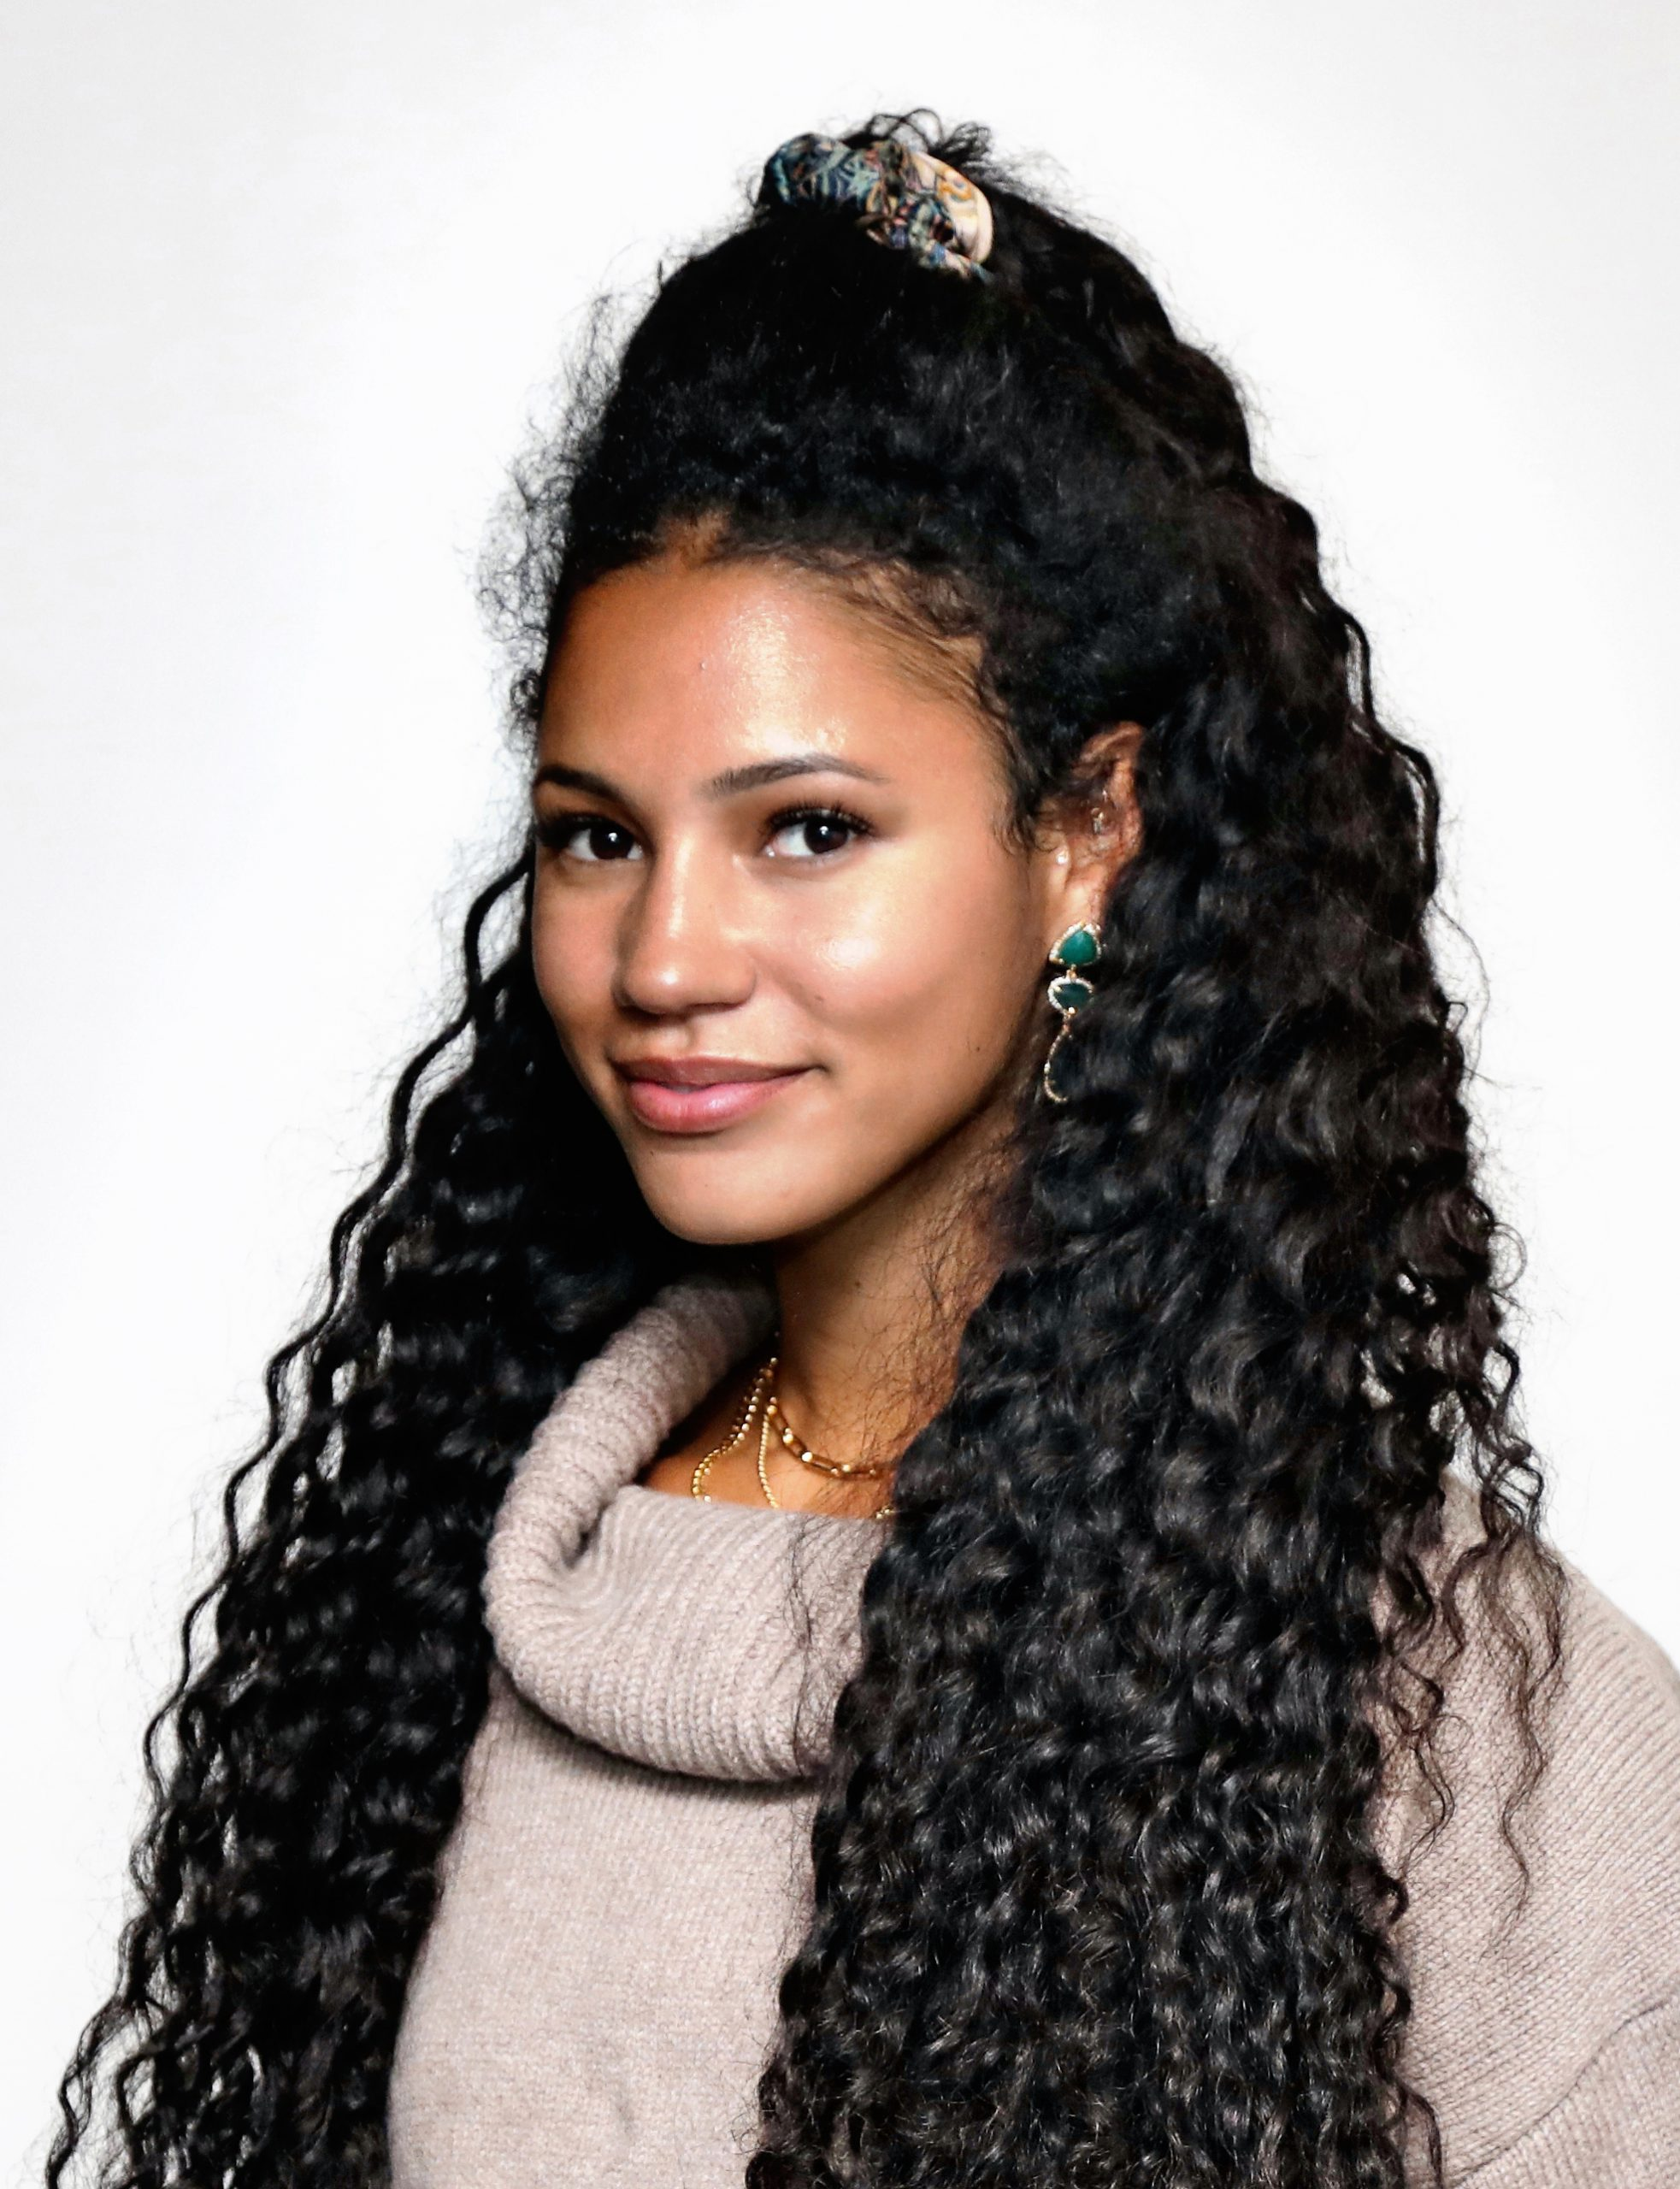 Vick Hope, 2021 judge